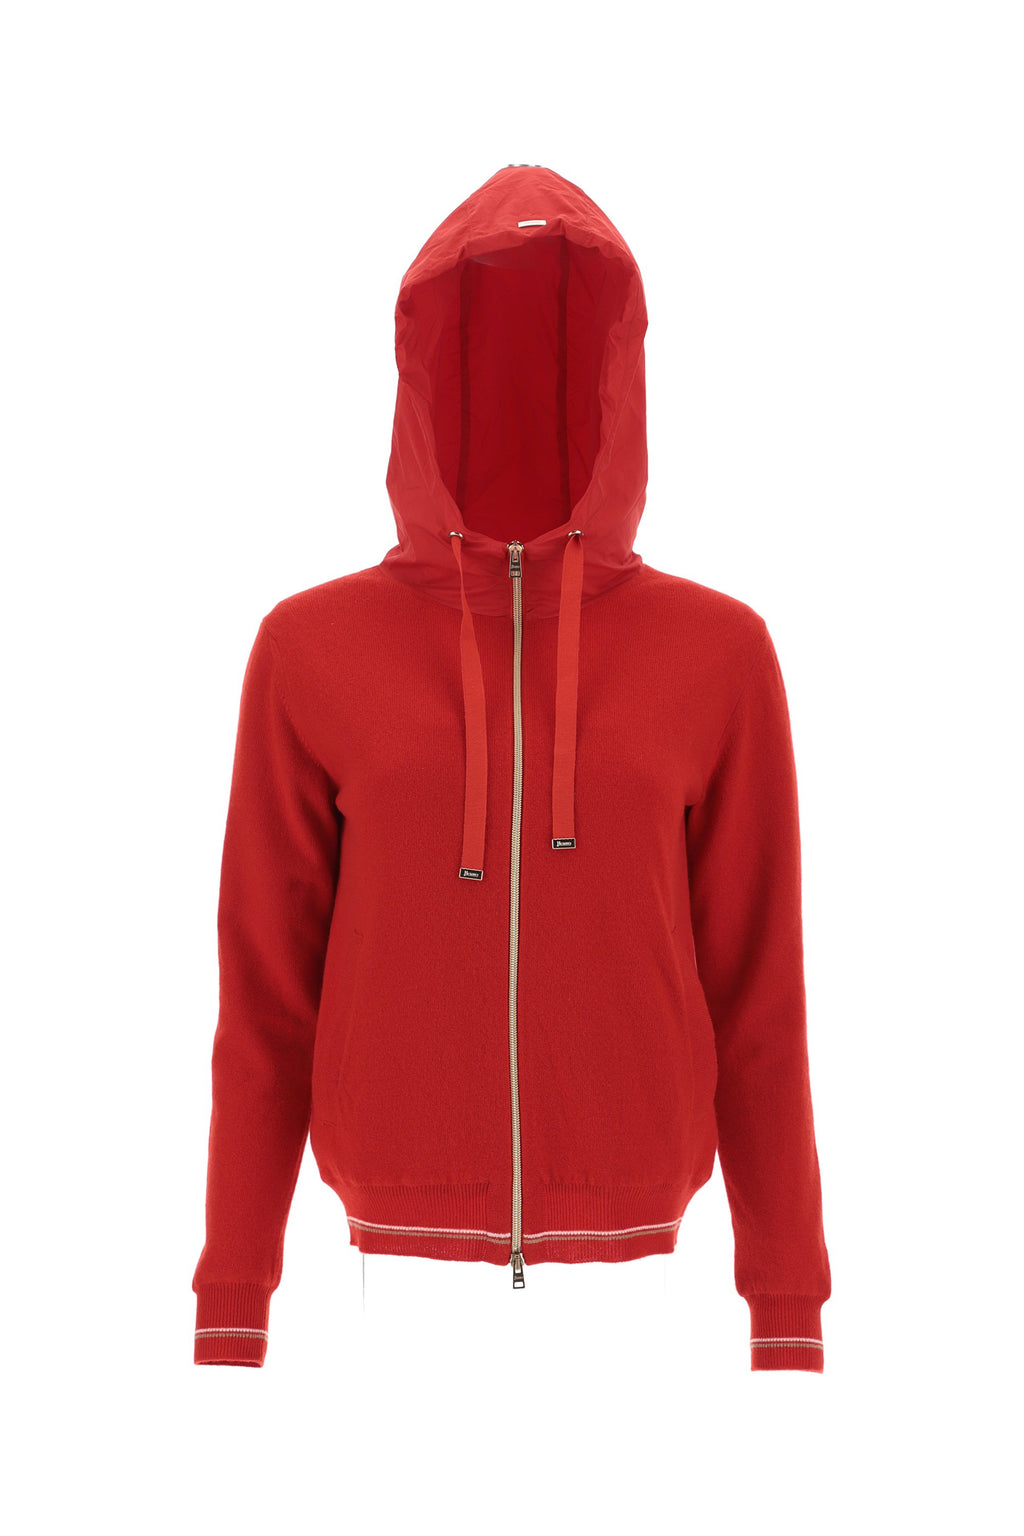 Herno Red Zip Hooded Jacket